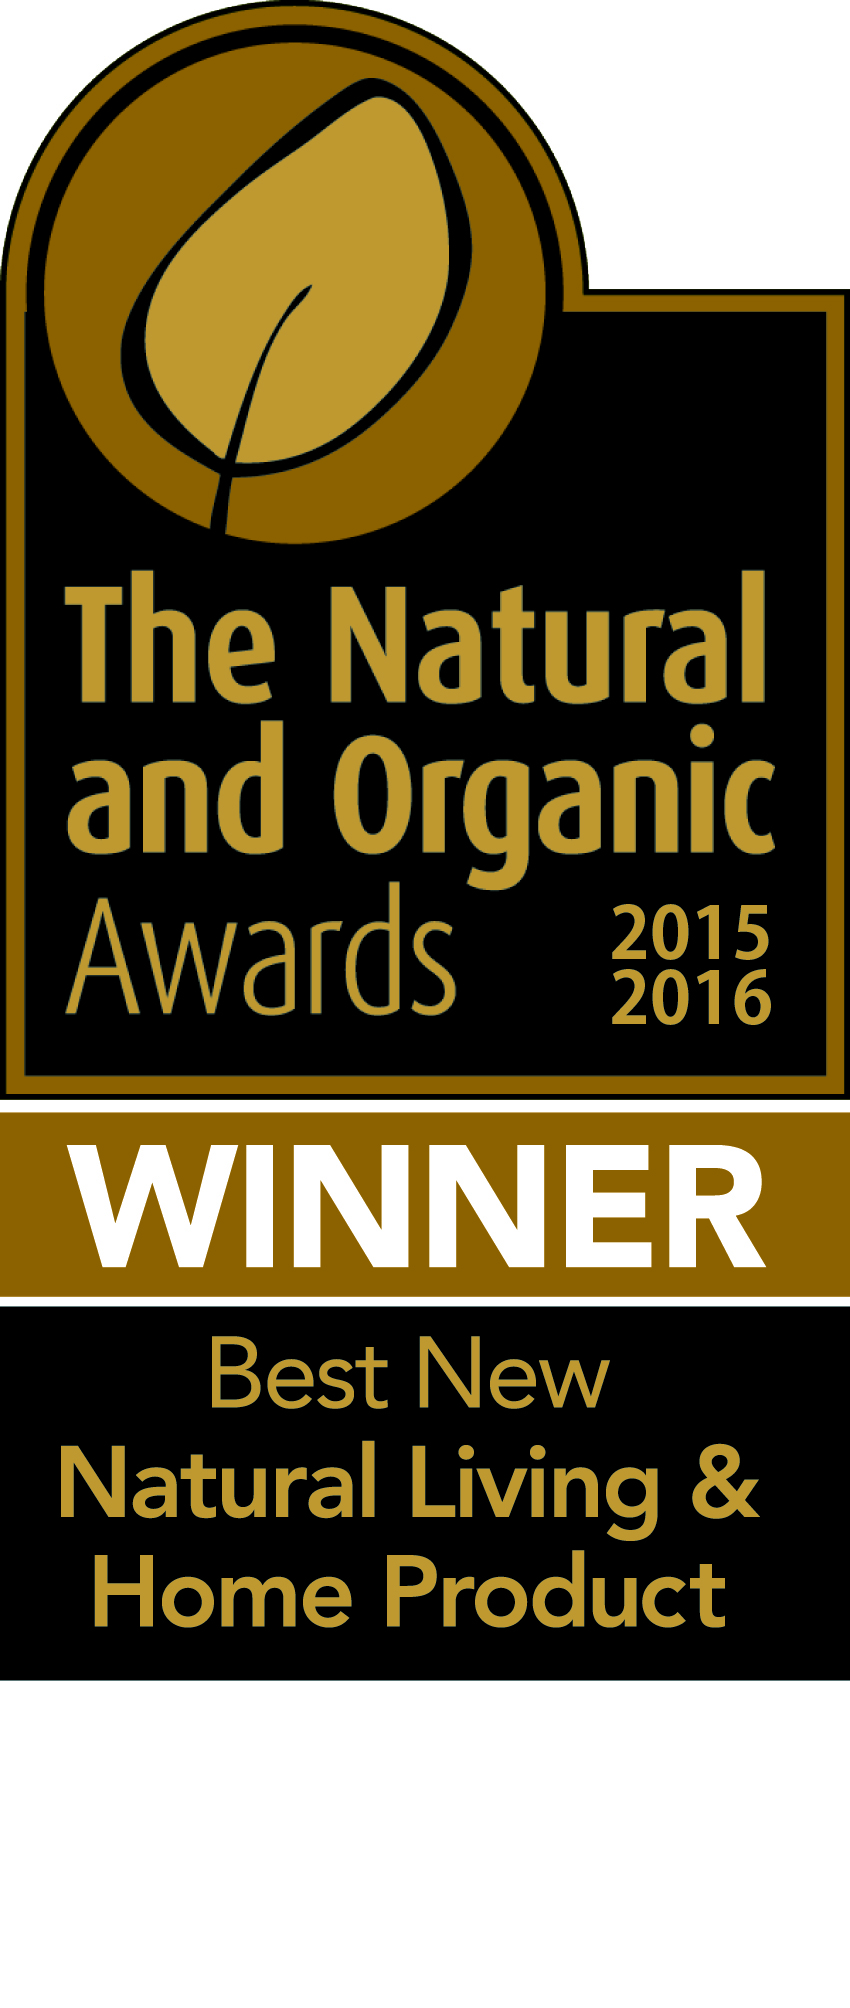 Natural & Organic Award 2015 and 2016.jpg